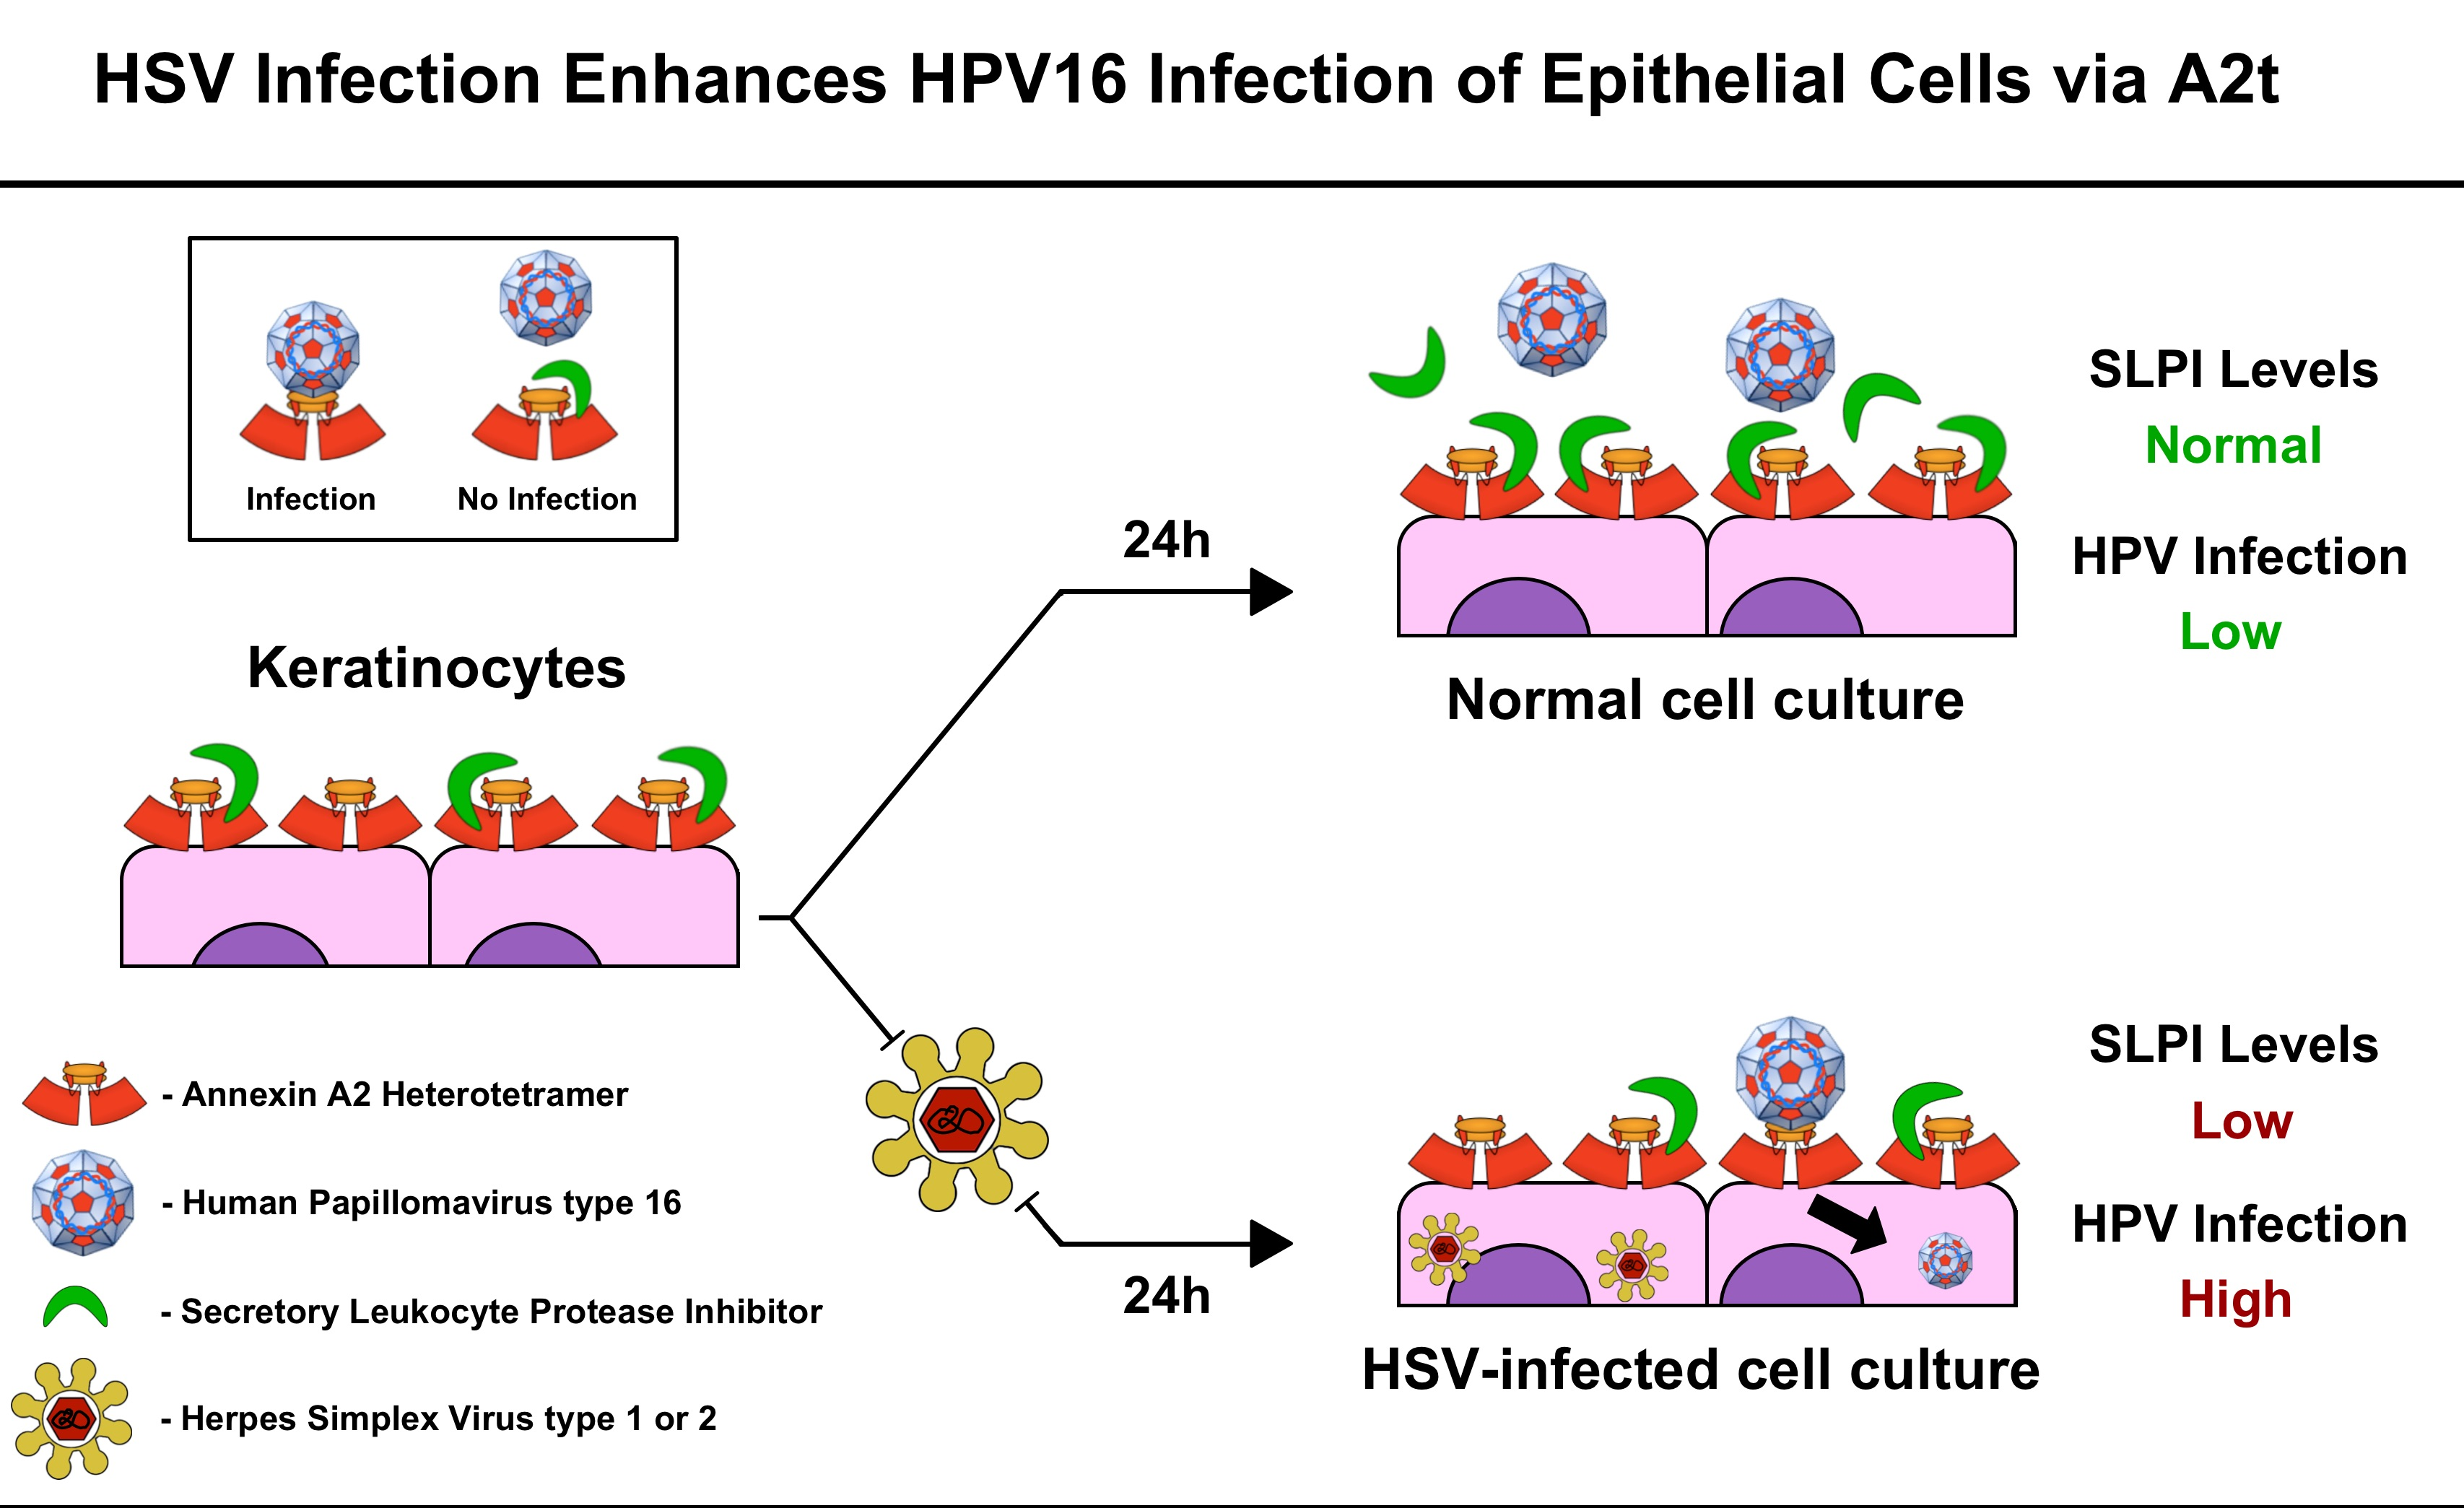 hpv and herpes simplex